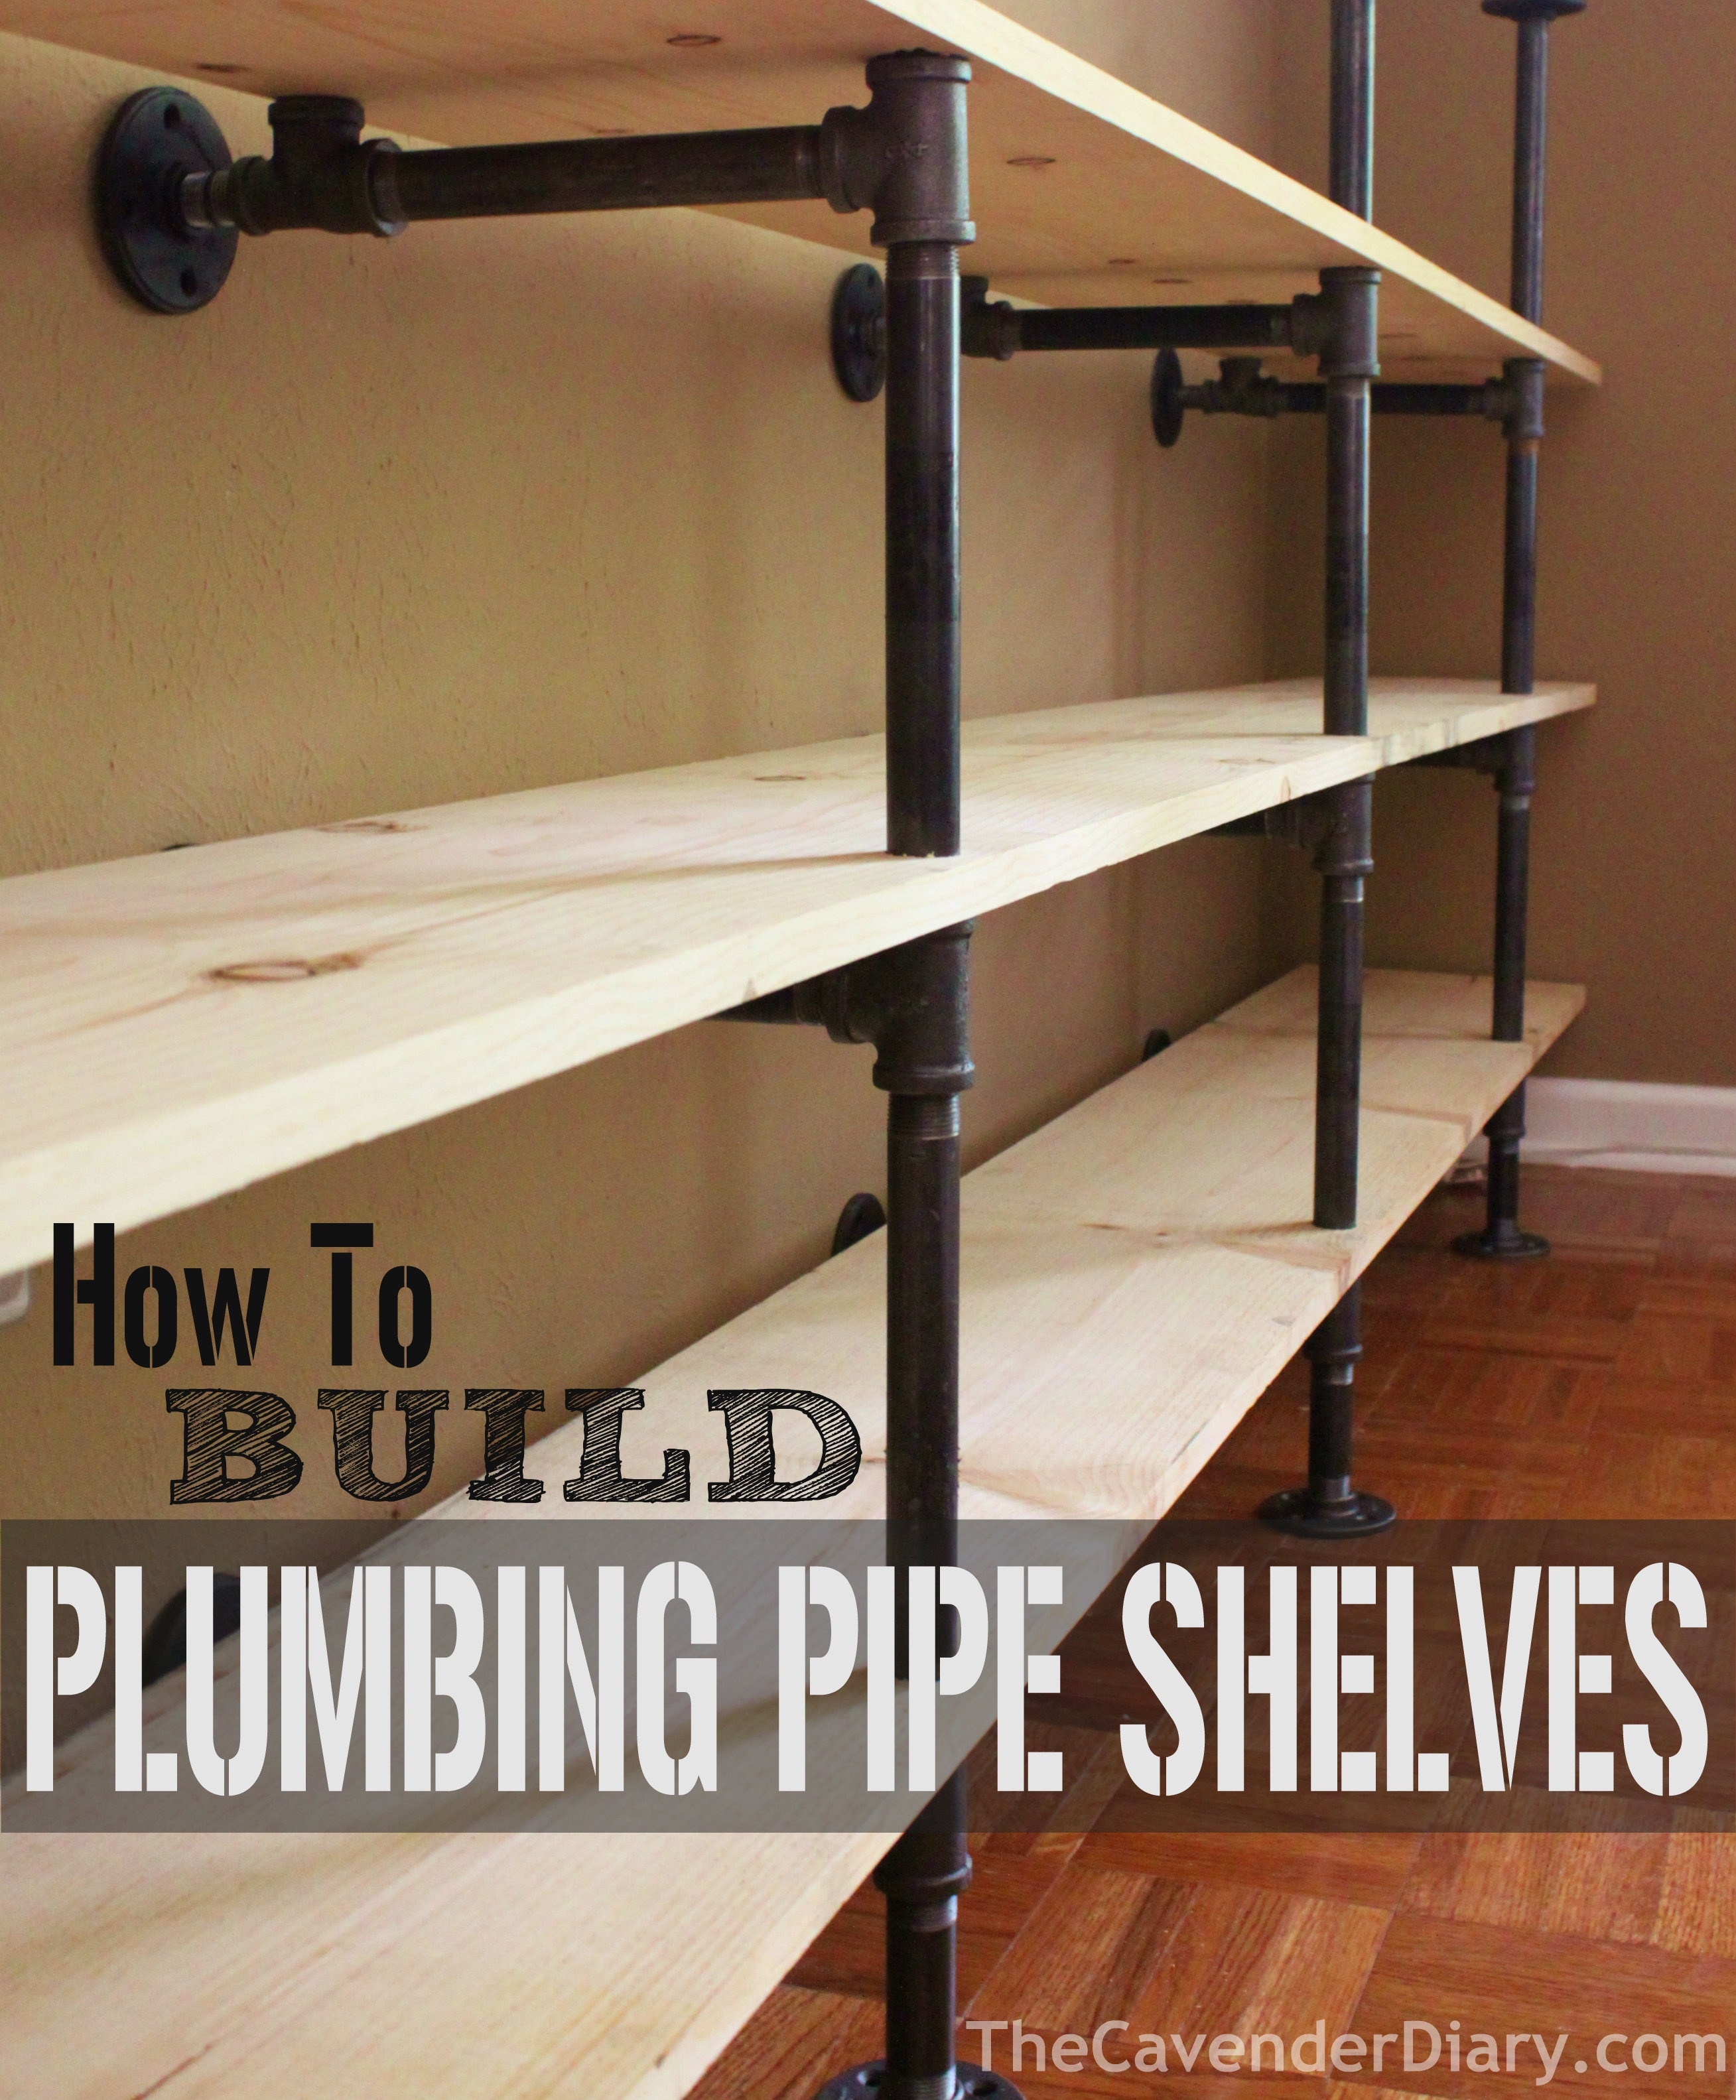 how to build plumbing pipe shelves the cavender diary. Black Bedroom Furniture Sets. Home Design Ideas